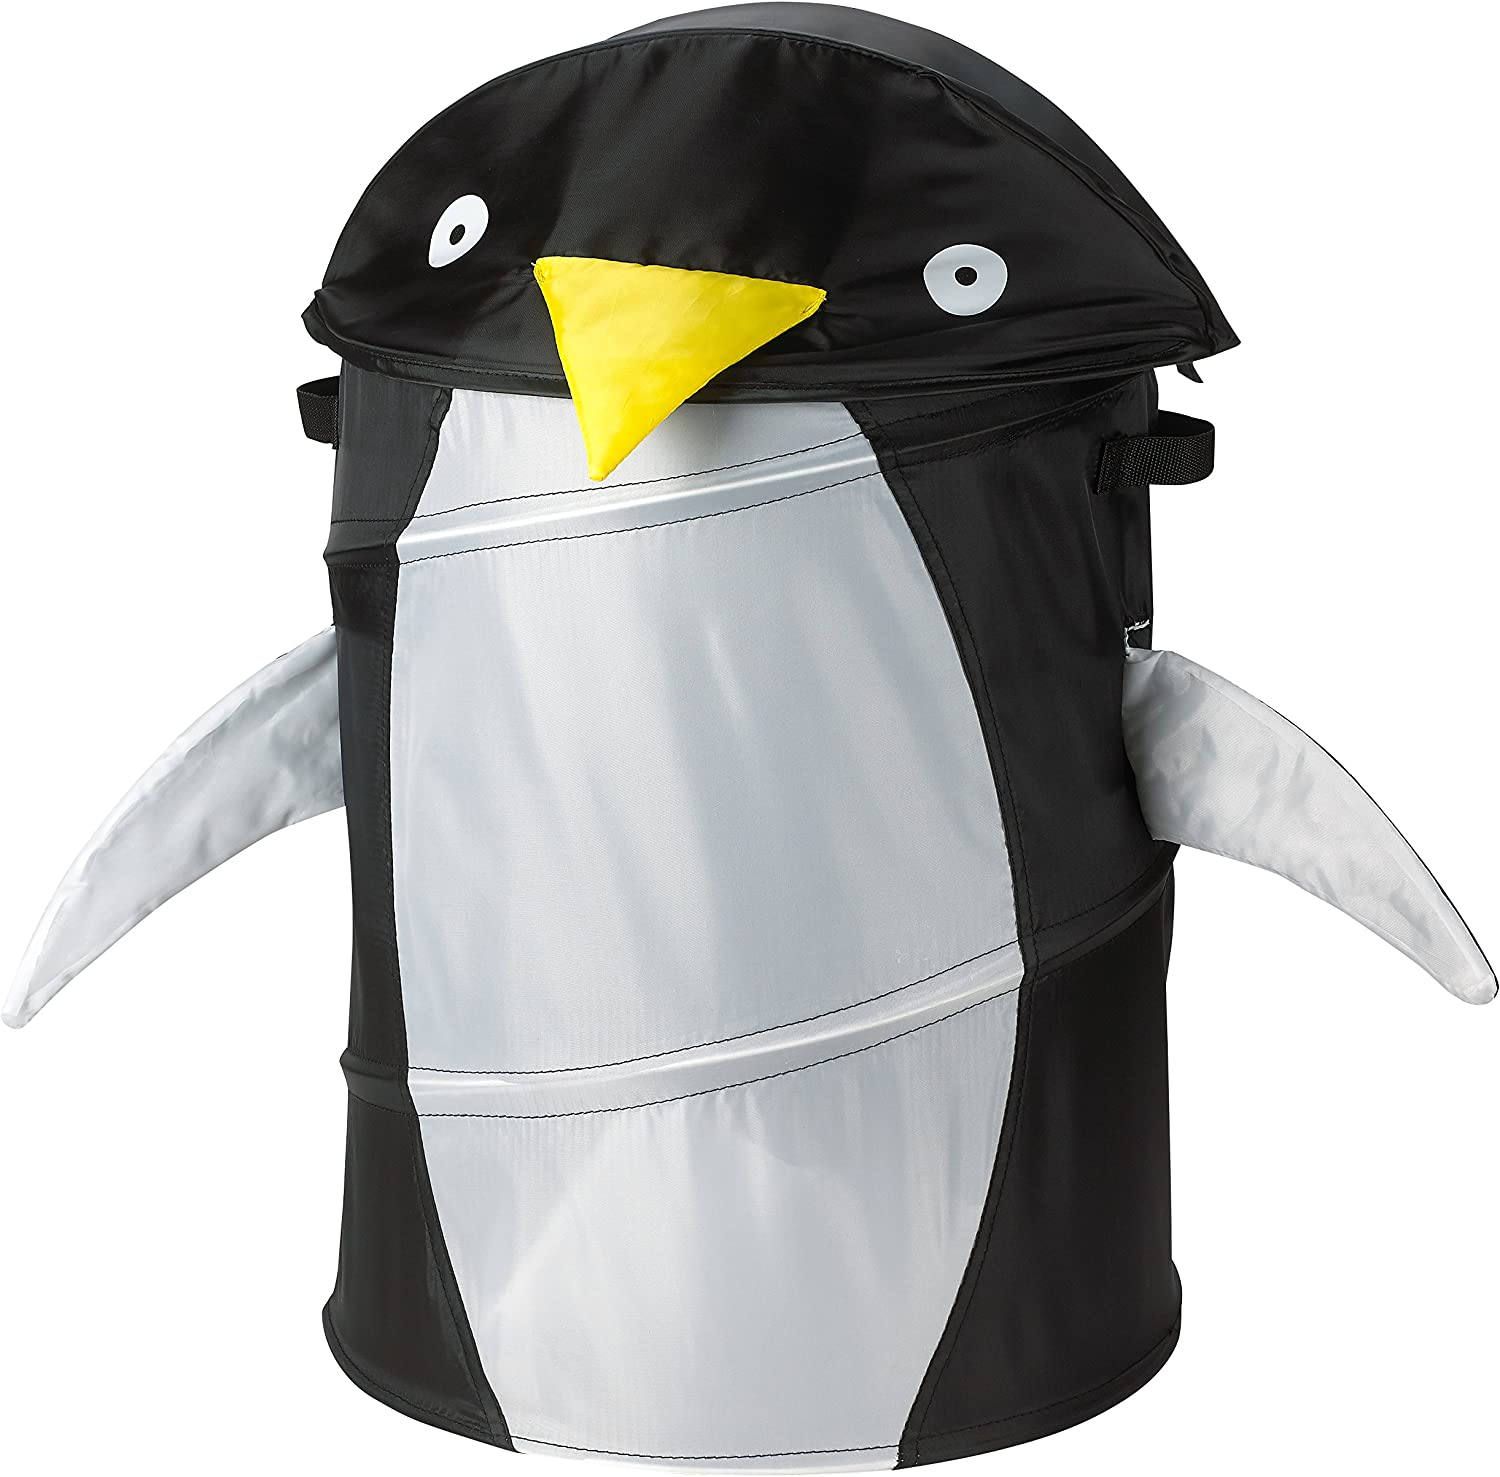 Kids Pop-Up Laundry Hamper, Penguin - Folds Flat for Storage and Easy to Open. Children Will Love The hampers Black Penguin Head That Tips Back Serving as a lid, with its Cute Eyes and Yellow Beak.